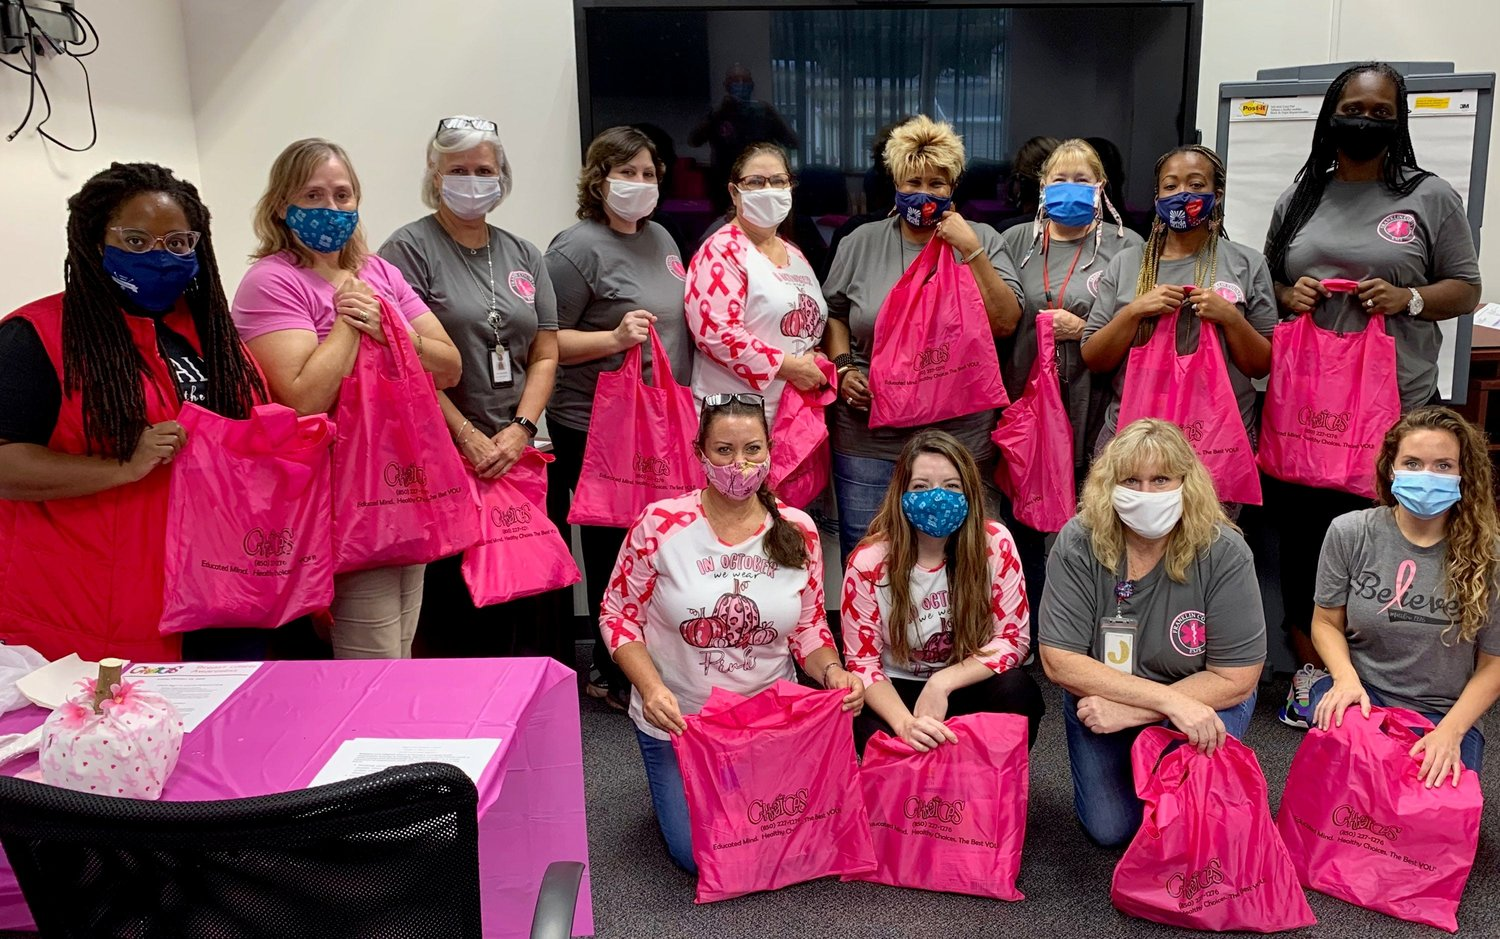 The staff at the county health department all celebrated Breast Cancer Awareness Month